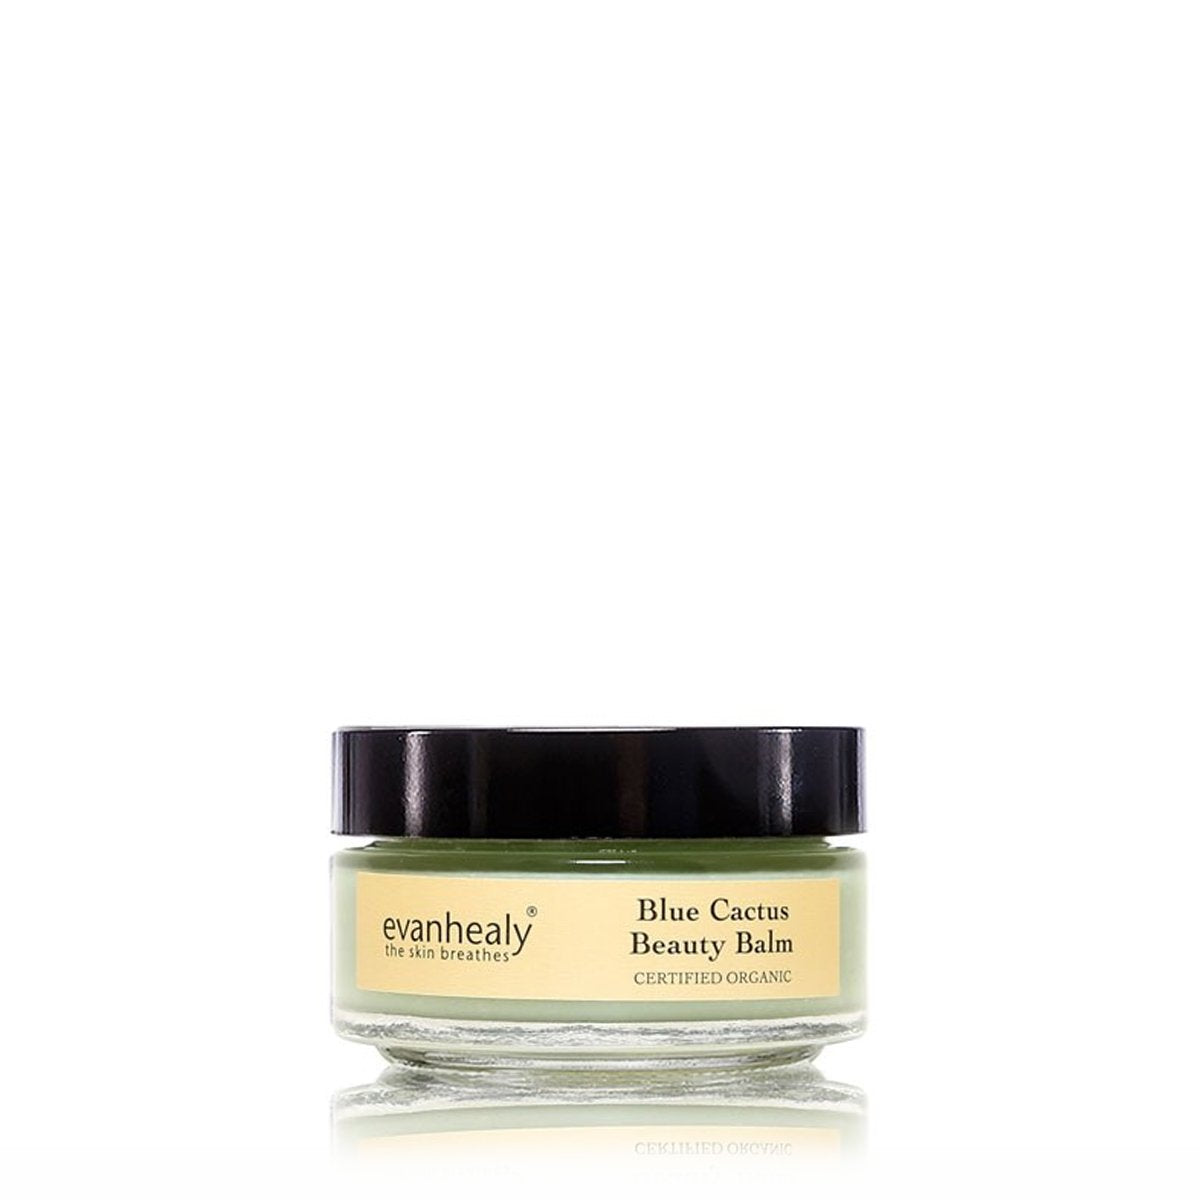 Blue Cactus Beauty Balm